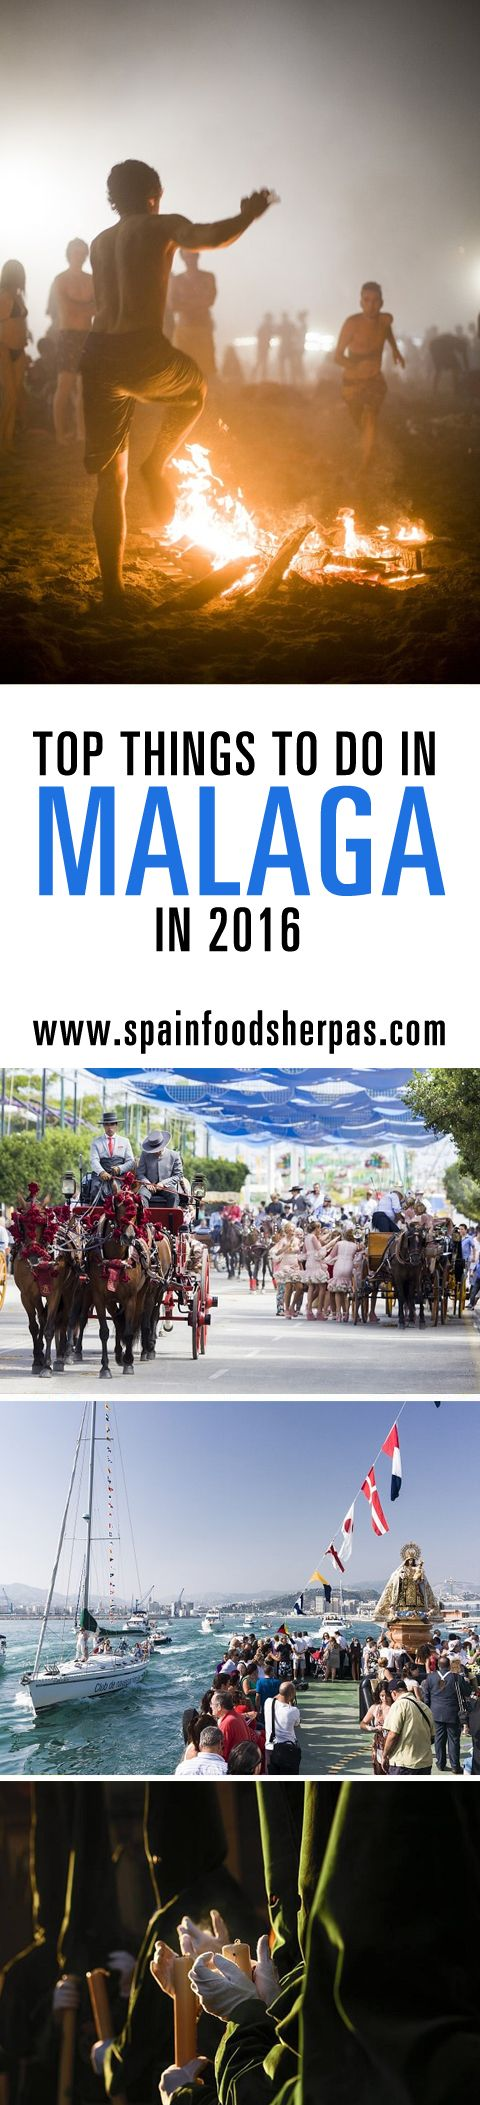 """Things to do in Malaga in 2016  Malaga is alive. Both the capital and the province demonstrate that each year with a wide variety of activities ranging from gastronomy to movies, traditions, music, folklore or summer """"moragas"""", festivals at the beach. In Spain Food Sherpas we chose 20 essential things to do in Malaga in 2016.  They may not be the most important ones, but those that we believe will allow you to discover the true essence of Malaga. Take your calendar and something to write."""